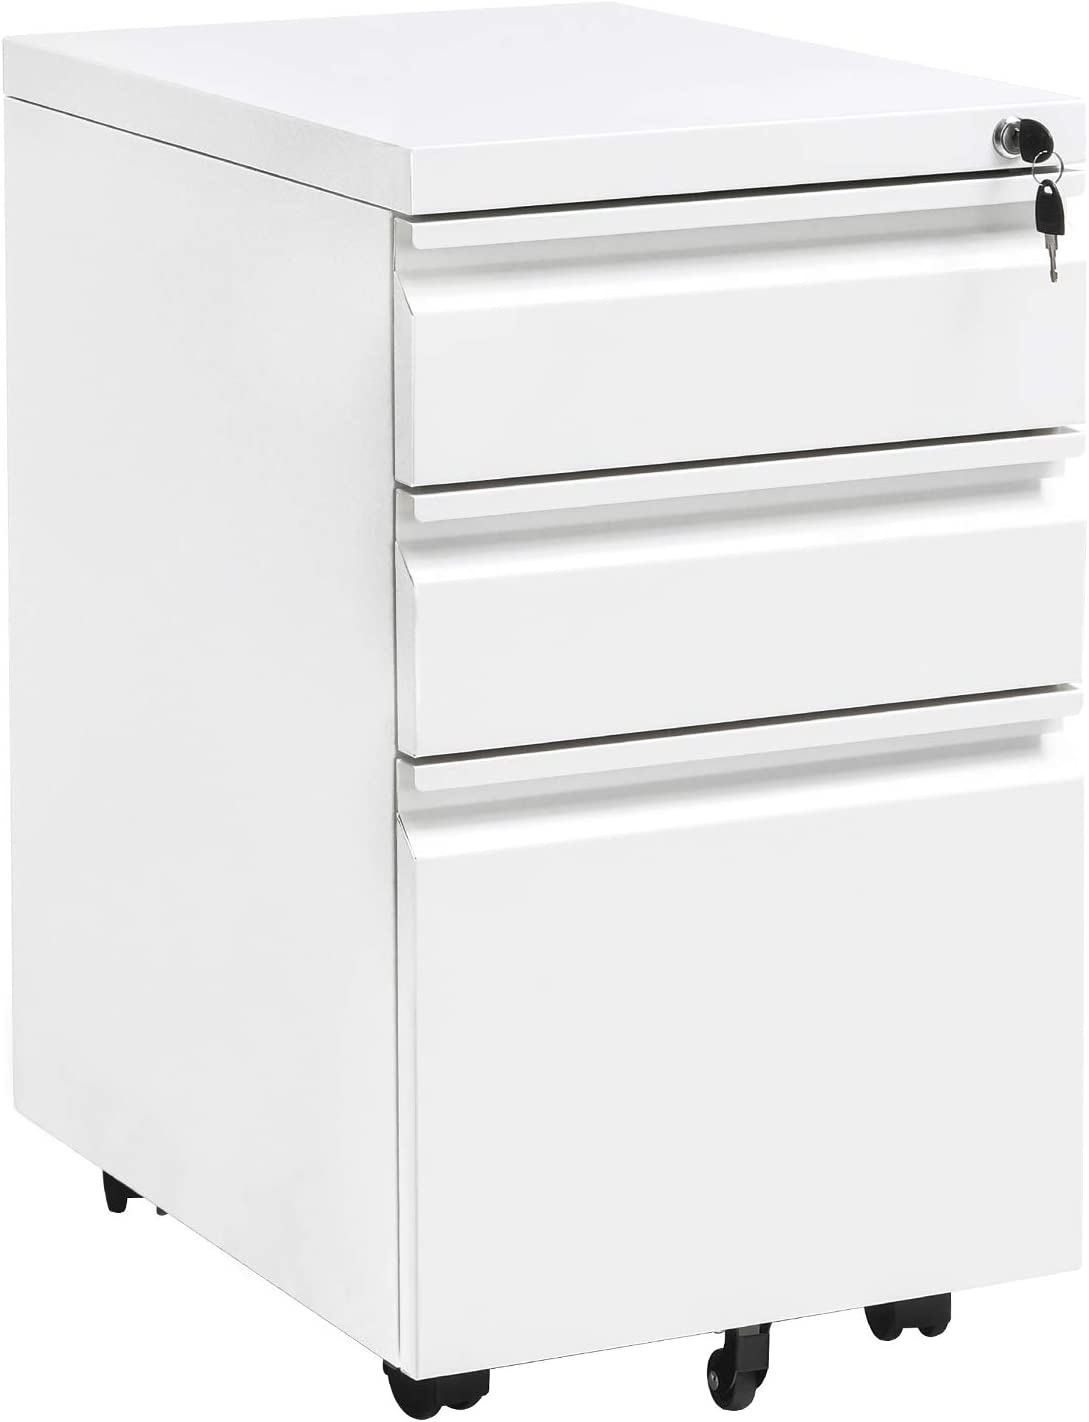 Locking File Cabinet Rolling Metal Filing Cabinet 34 Drawer Fully Assembled  Office Pedestal Files Except Wheel(White A)